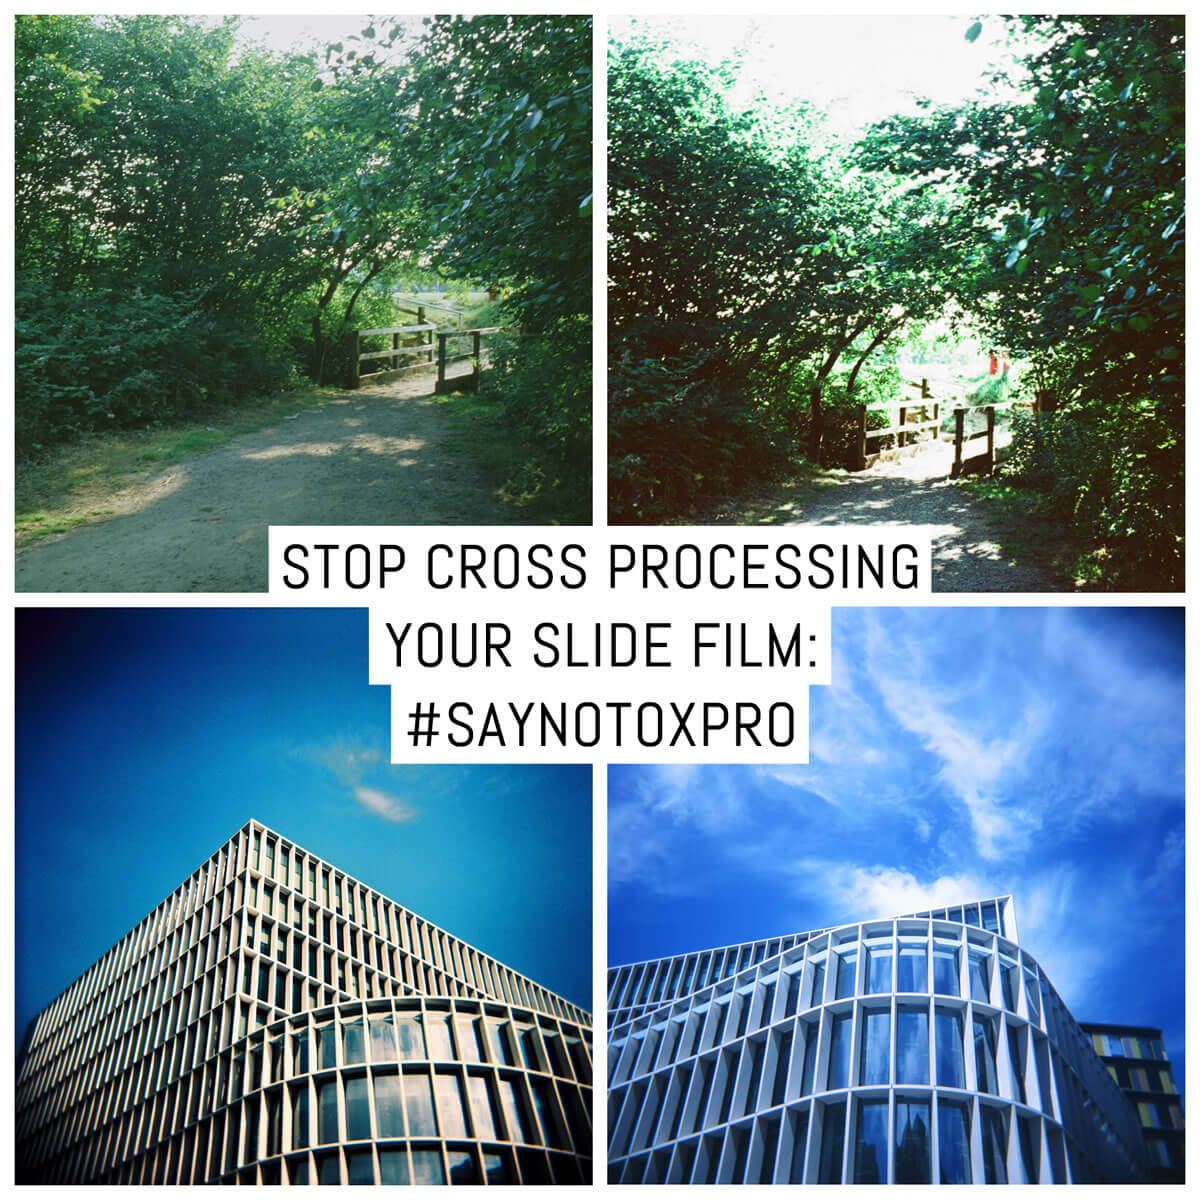 Cover - Stop cross processing your slide film- #Saynotoxpro - by Sandeep Sumal